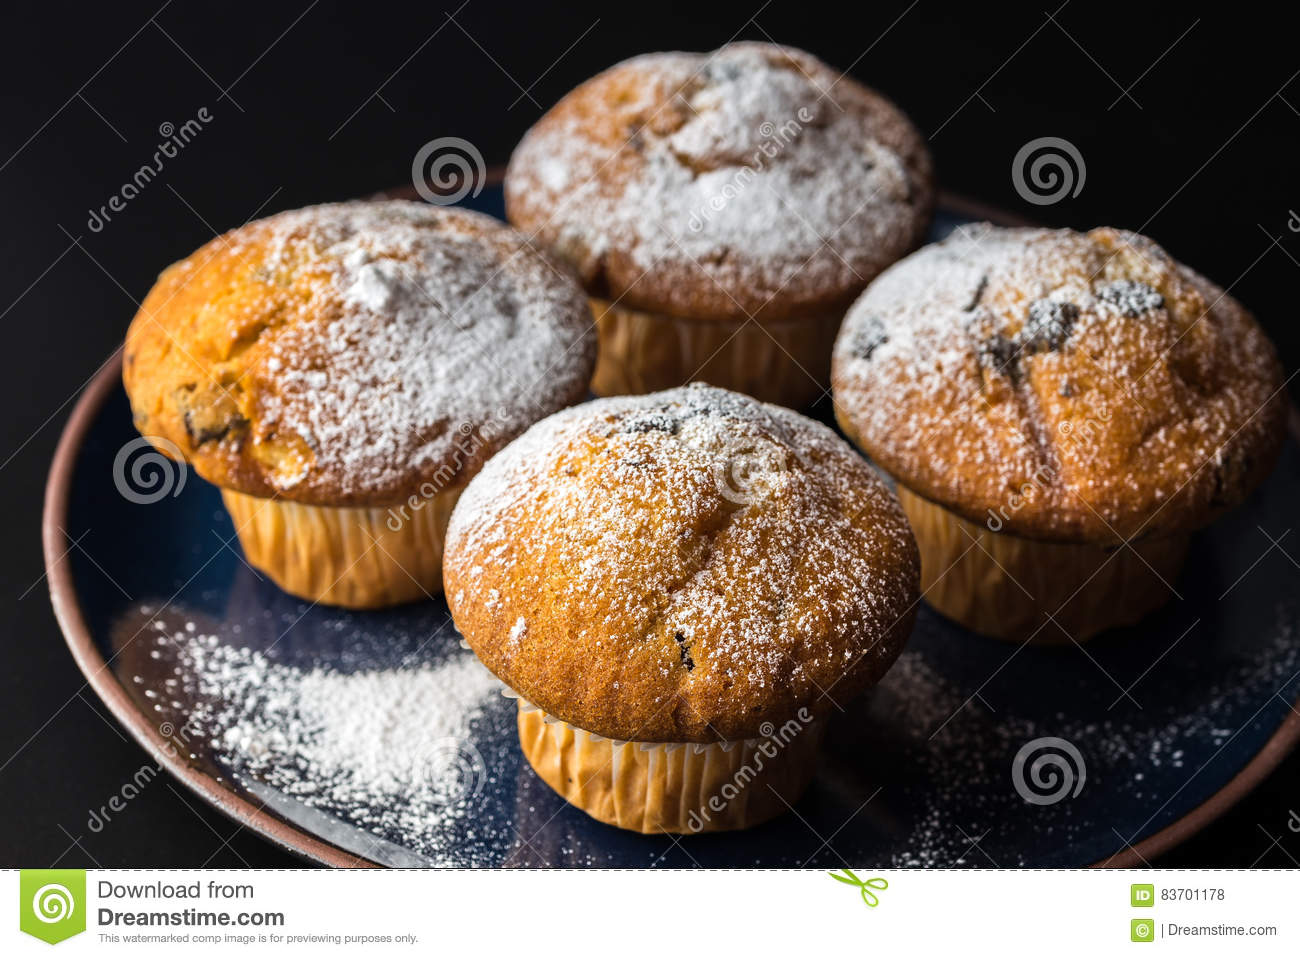 Chocolate Muffins With Powdered Sugar On Dark Blue Plate. Stock Photo